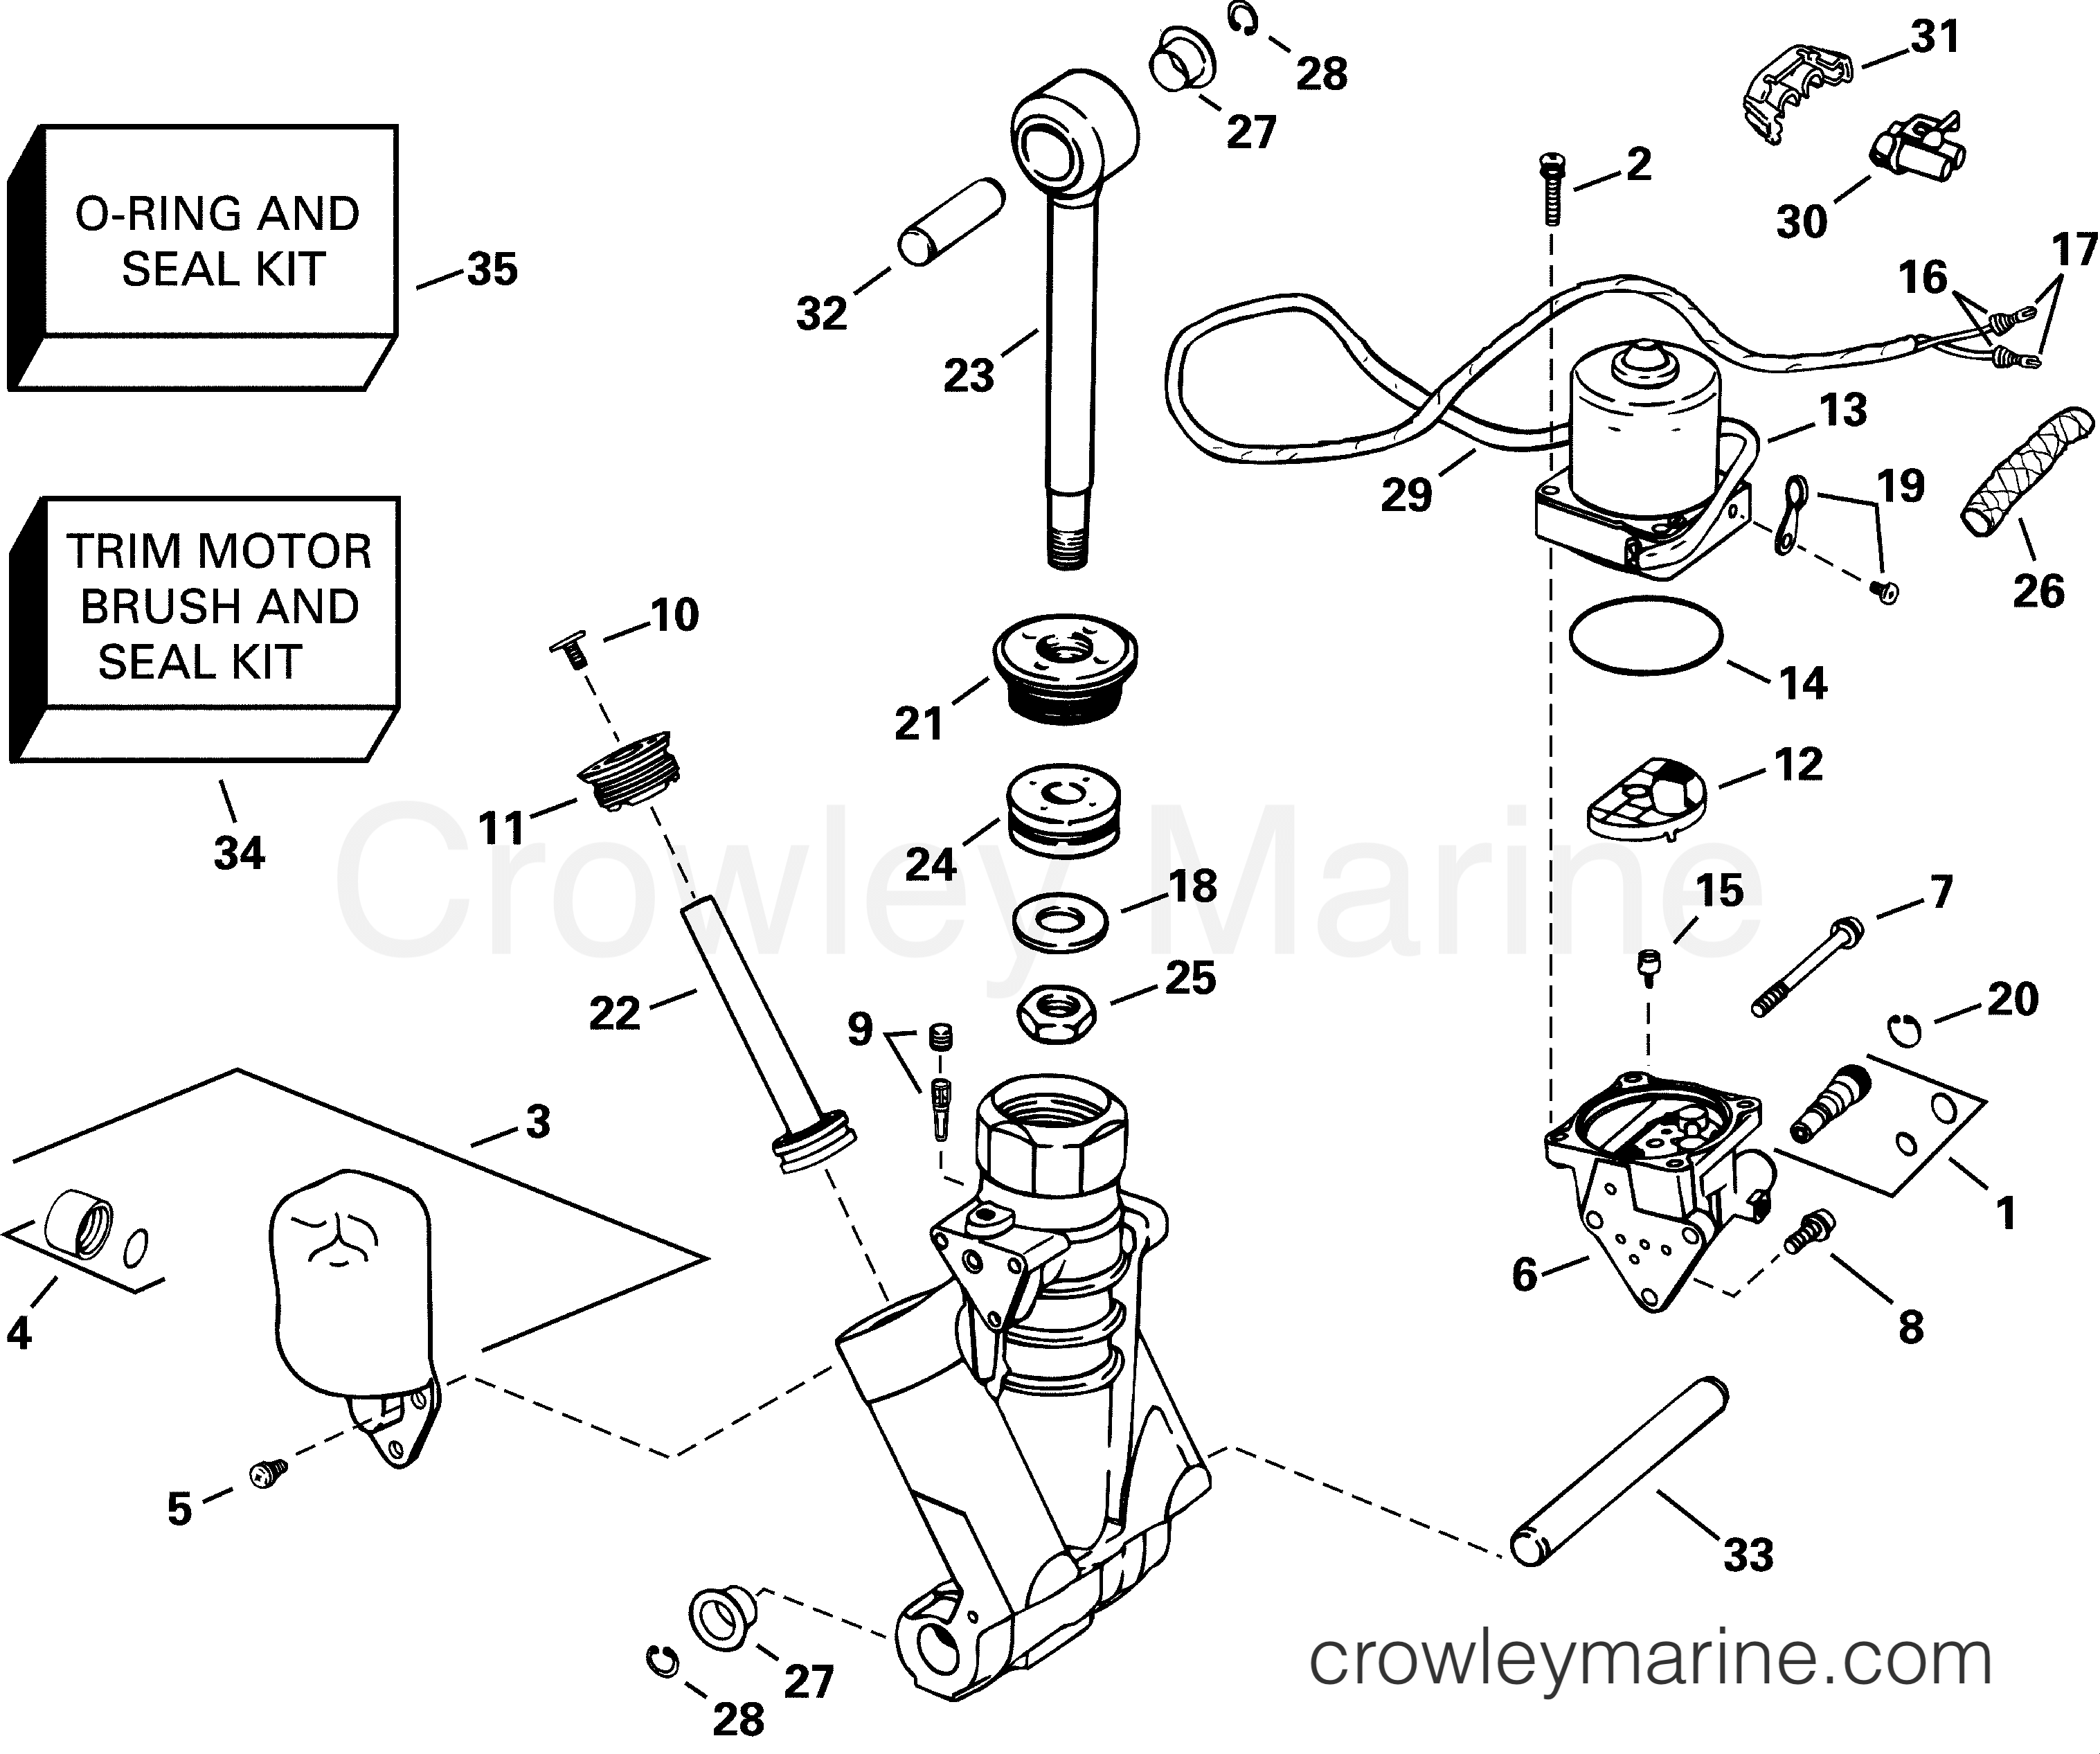 Omc Trim Tilt System Diagram Electrical Wiring Diagrams Johnson Outboard Power Hydraulic Assembly 2001 Evinrude Outboards 225 Starter Circuit